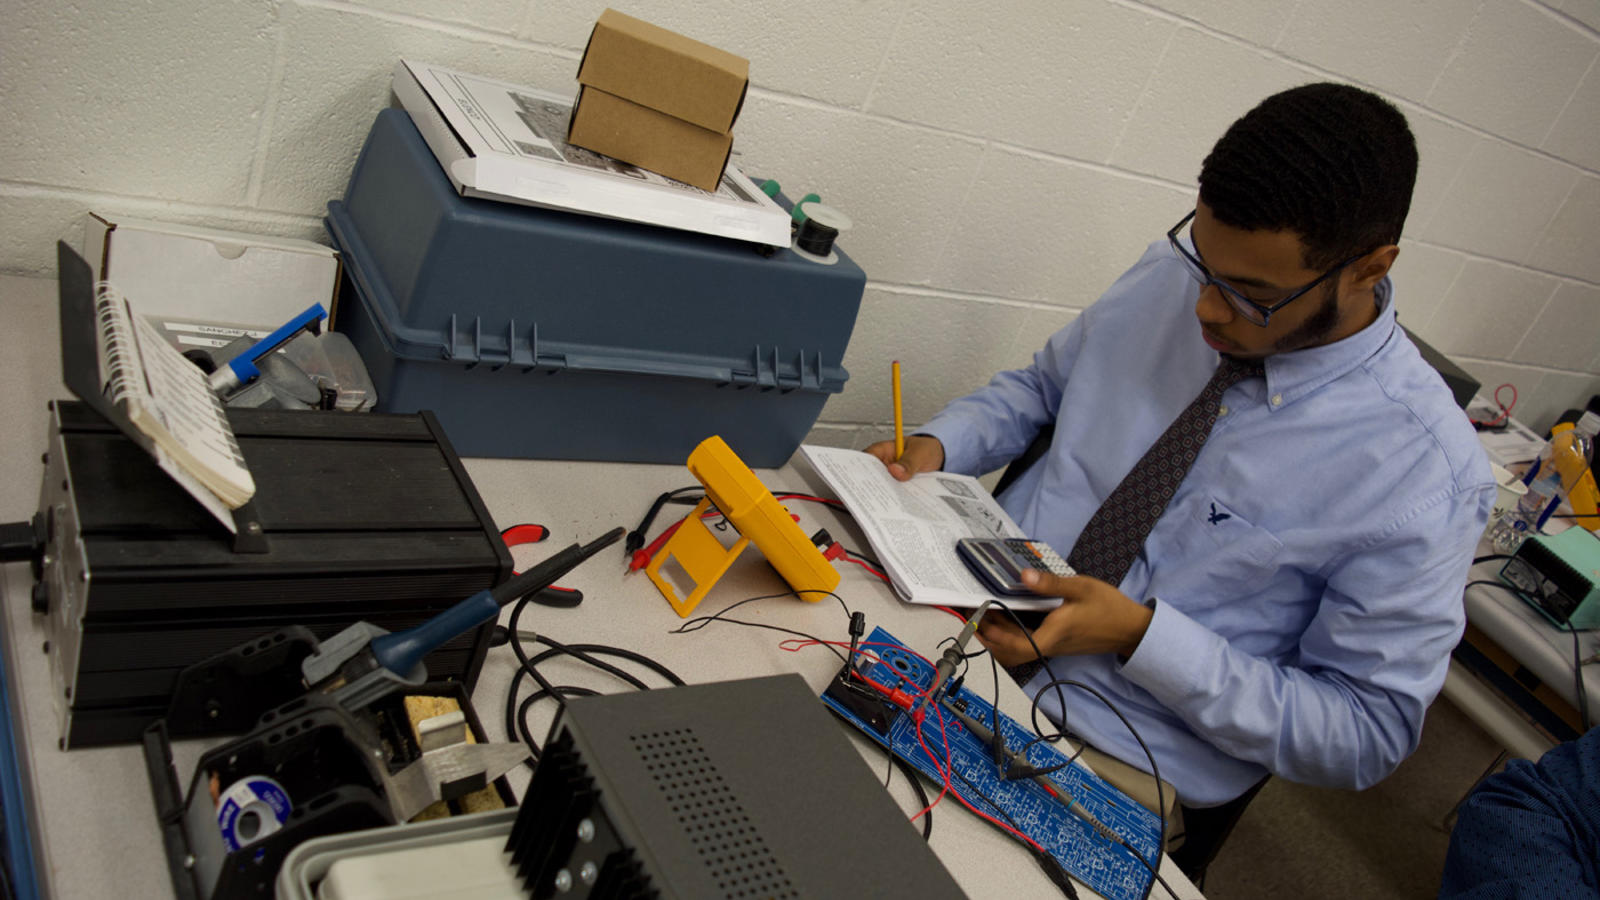 An electronics tech performs calculations using a calculator and readings from a multi-tester.